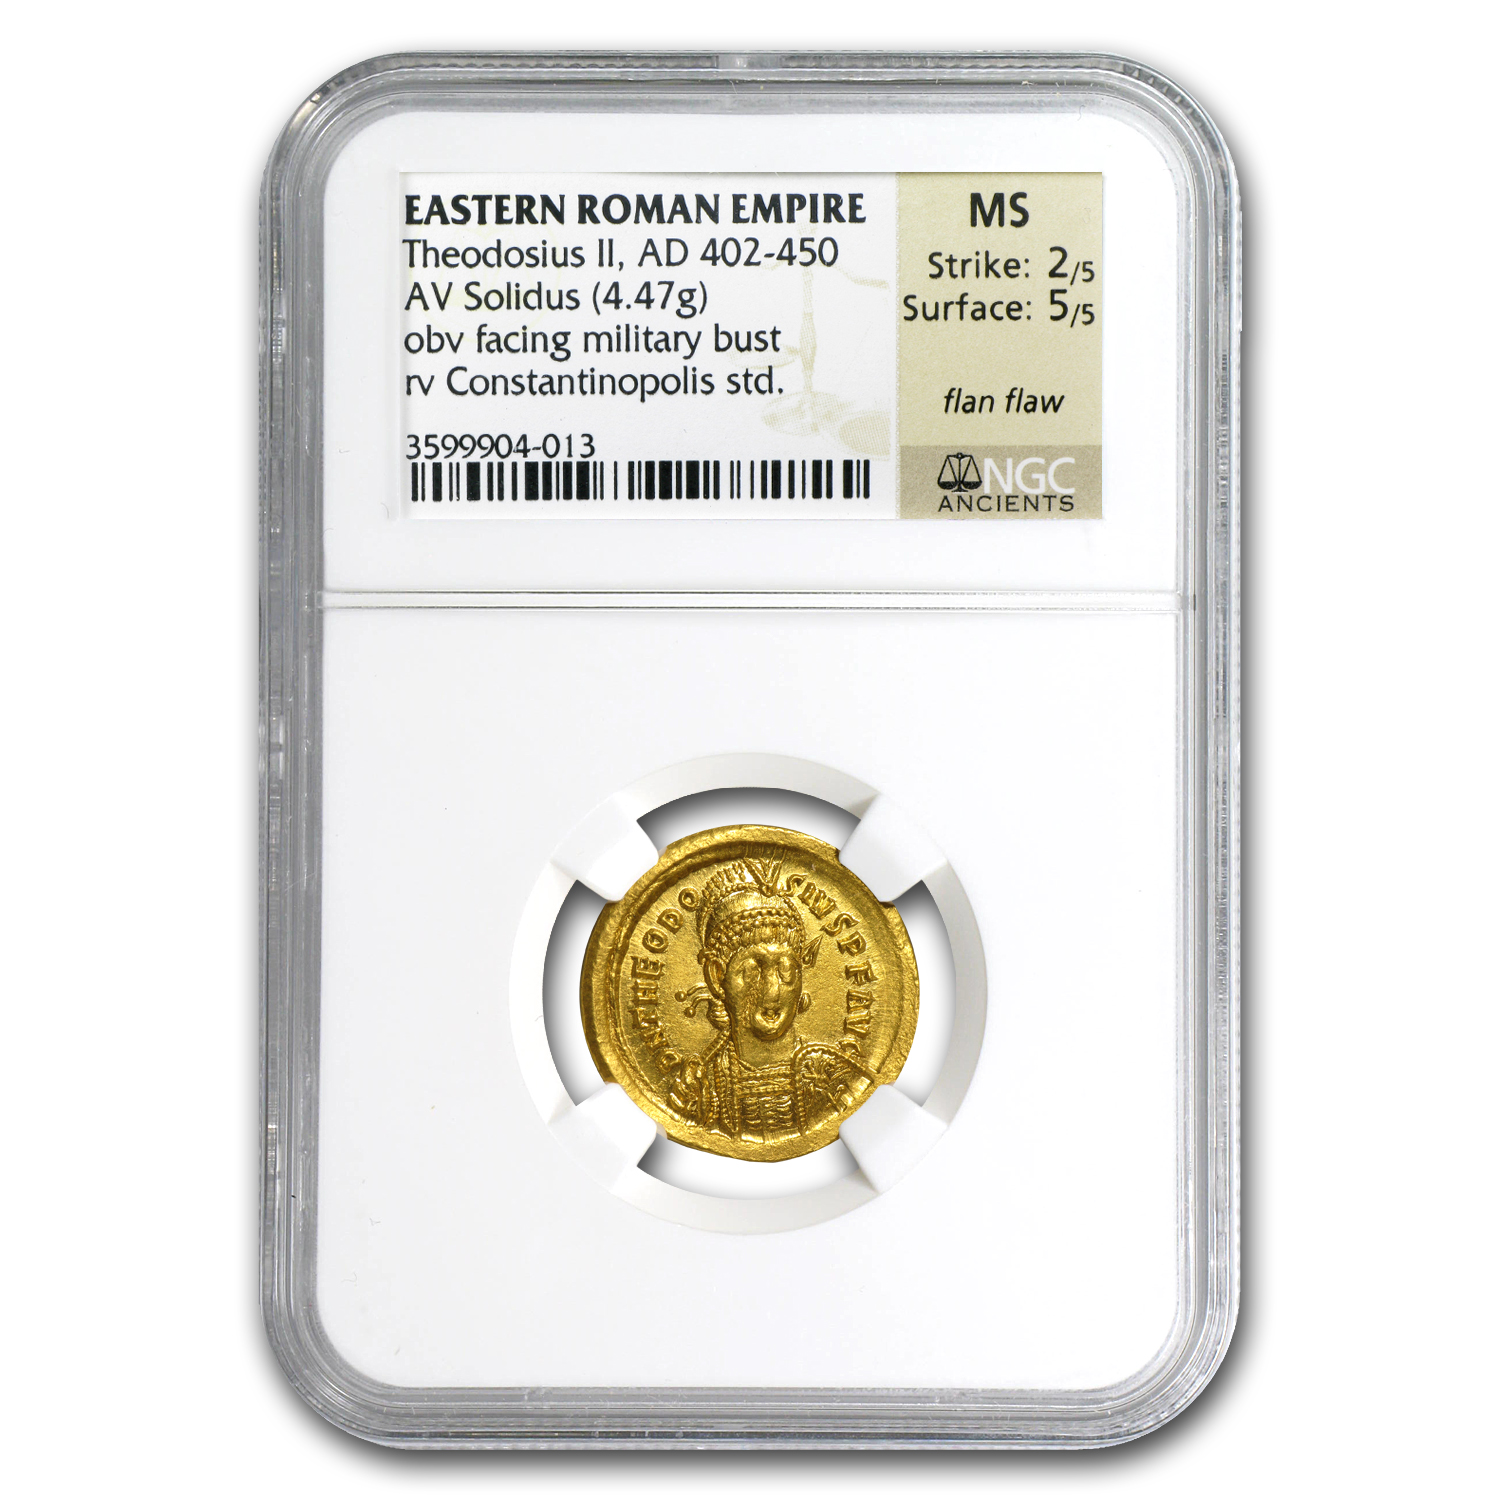 East Roman Empire Gold Solidus Theodosius II MS NGC (402-450 AD)